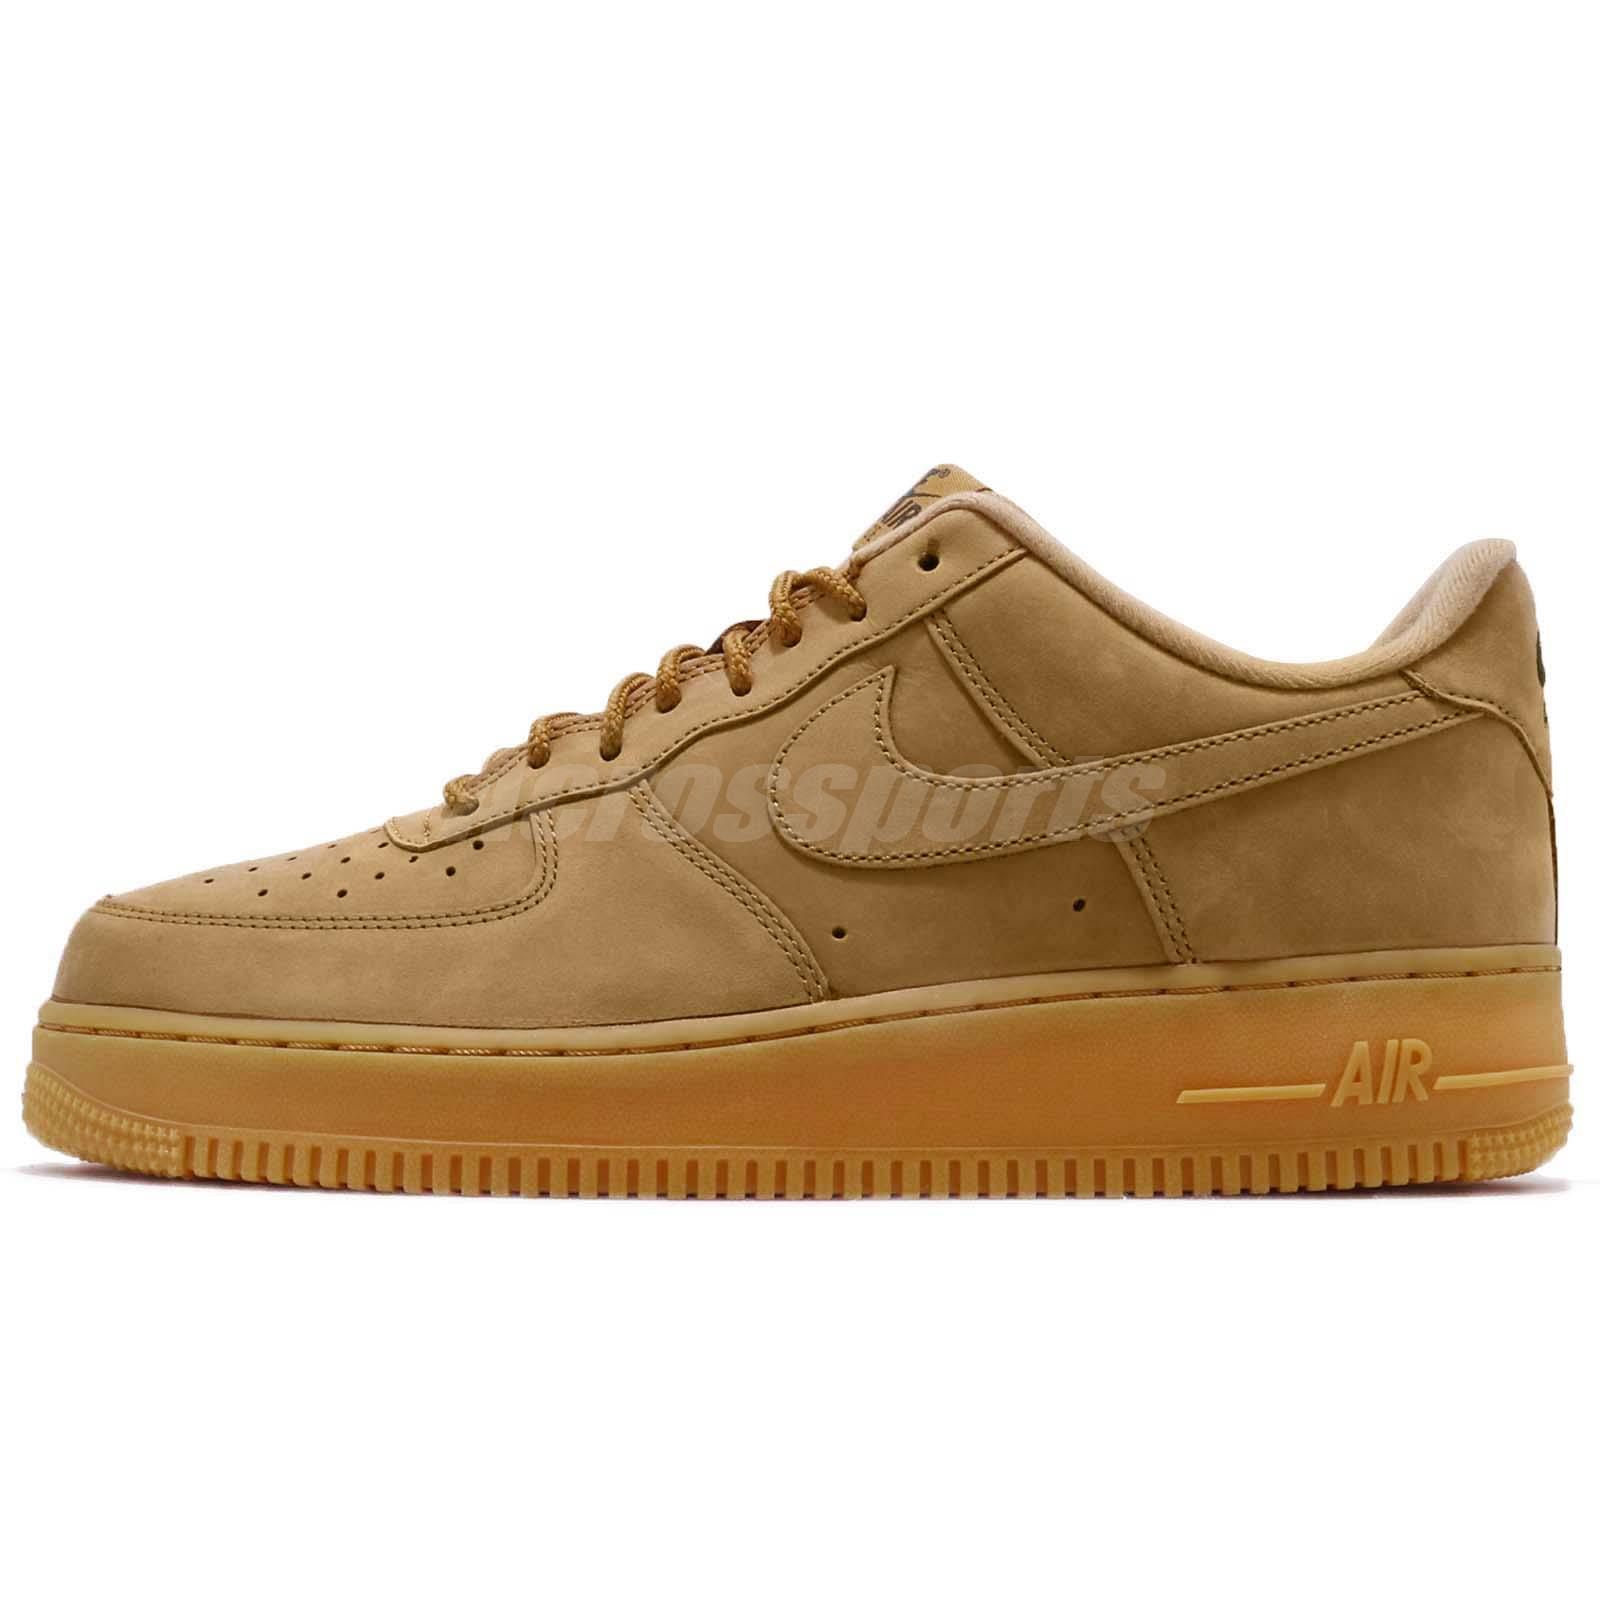 release date 104d1 a9a75 Nike Air Force 1 07 WB Flax Wheat Brown Mens Shoes Sneakers AF1 AA4061-200